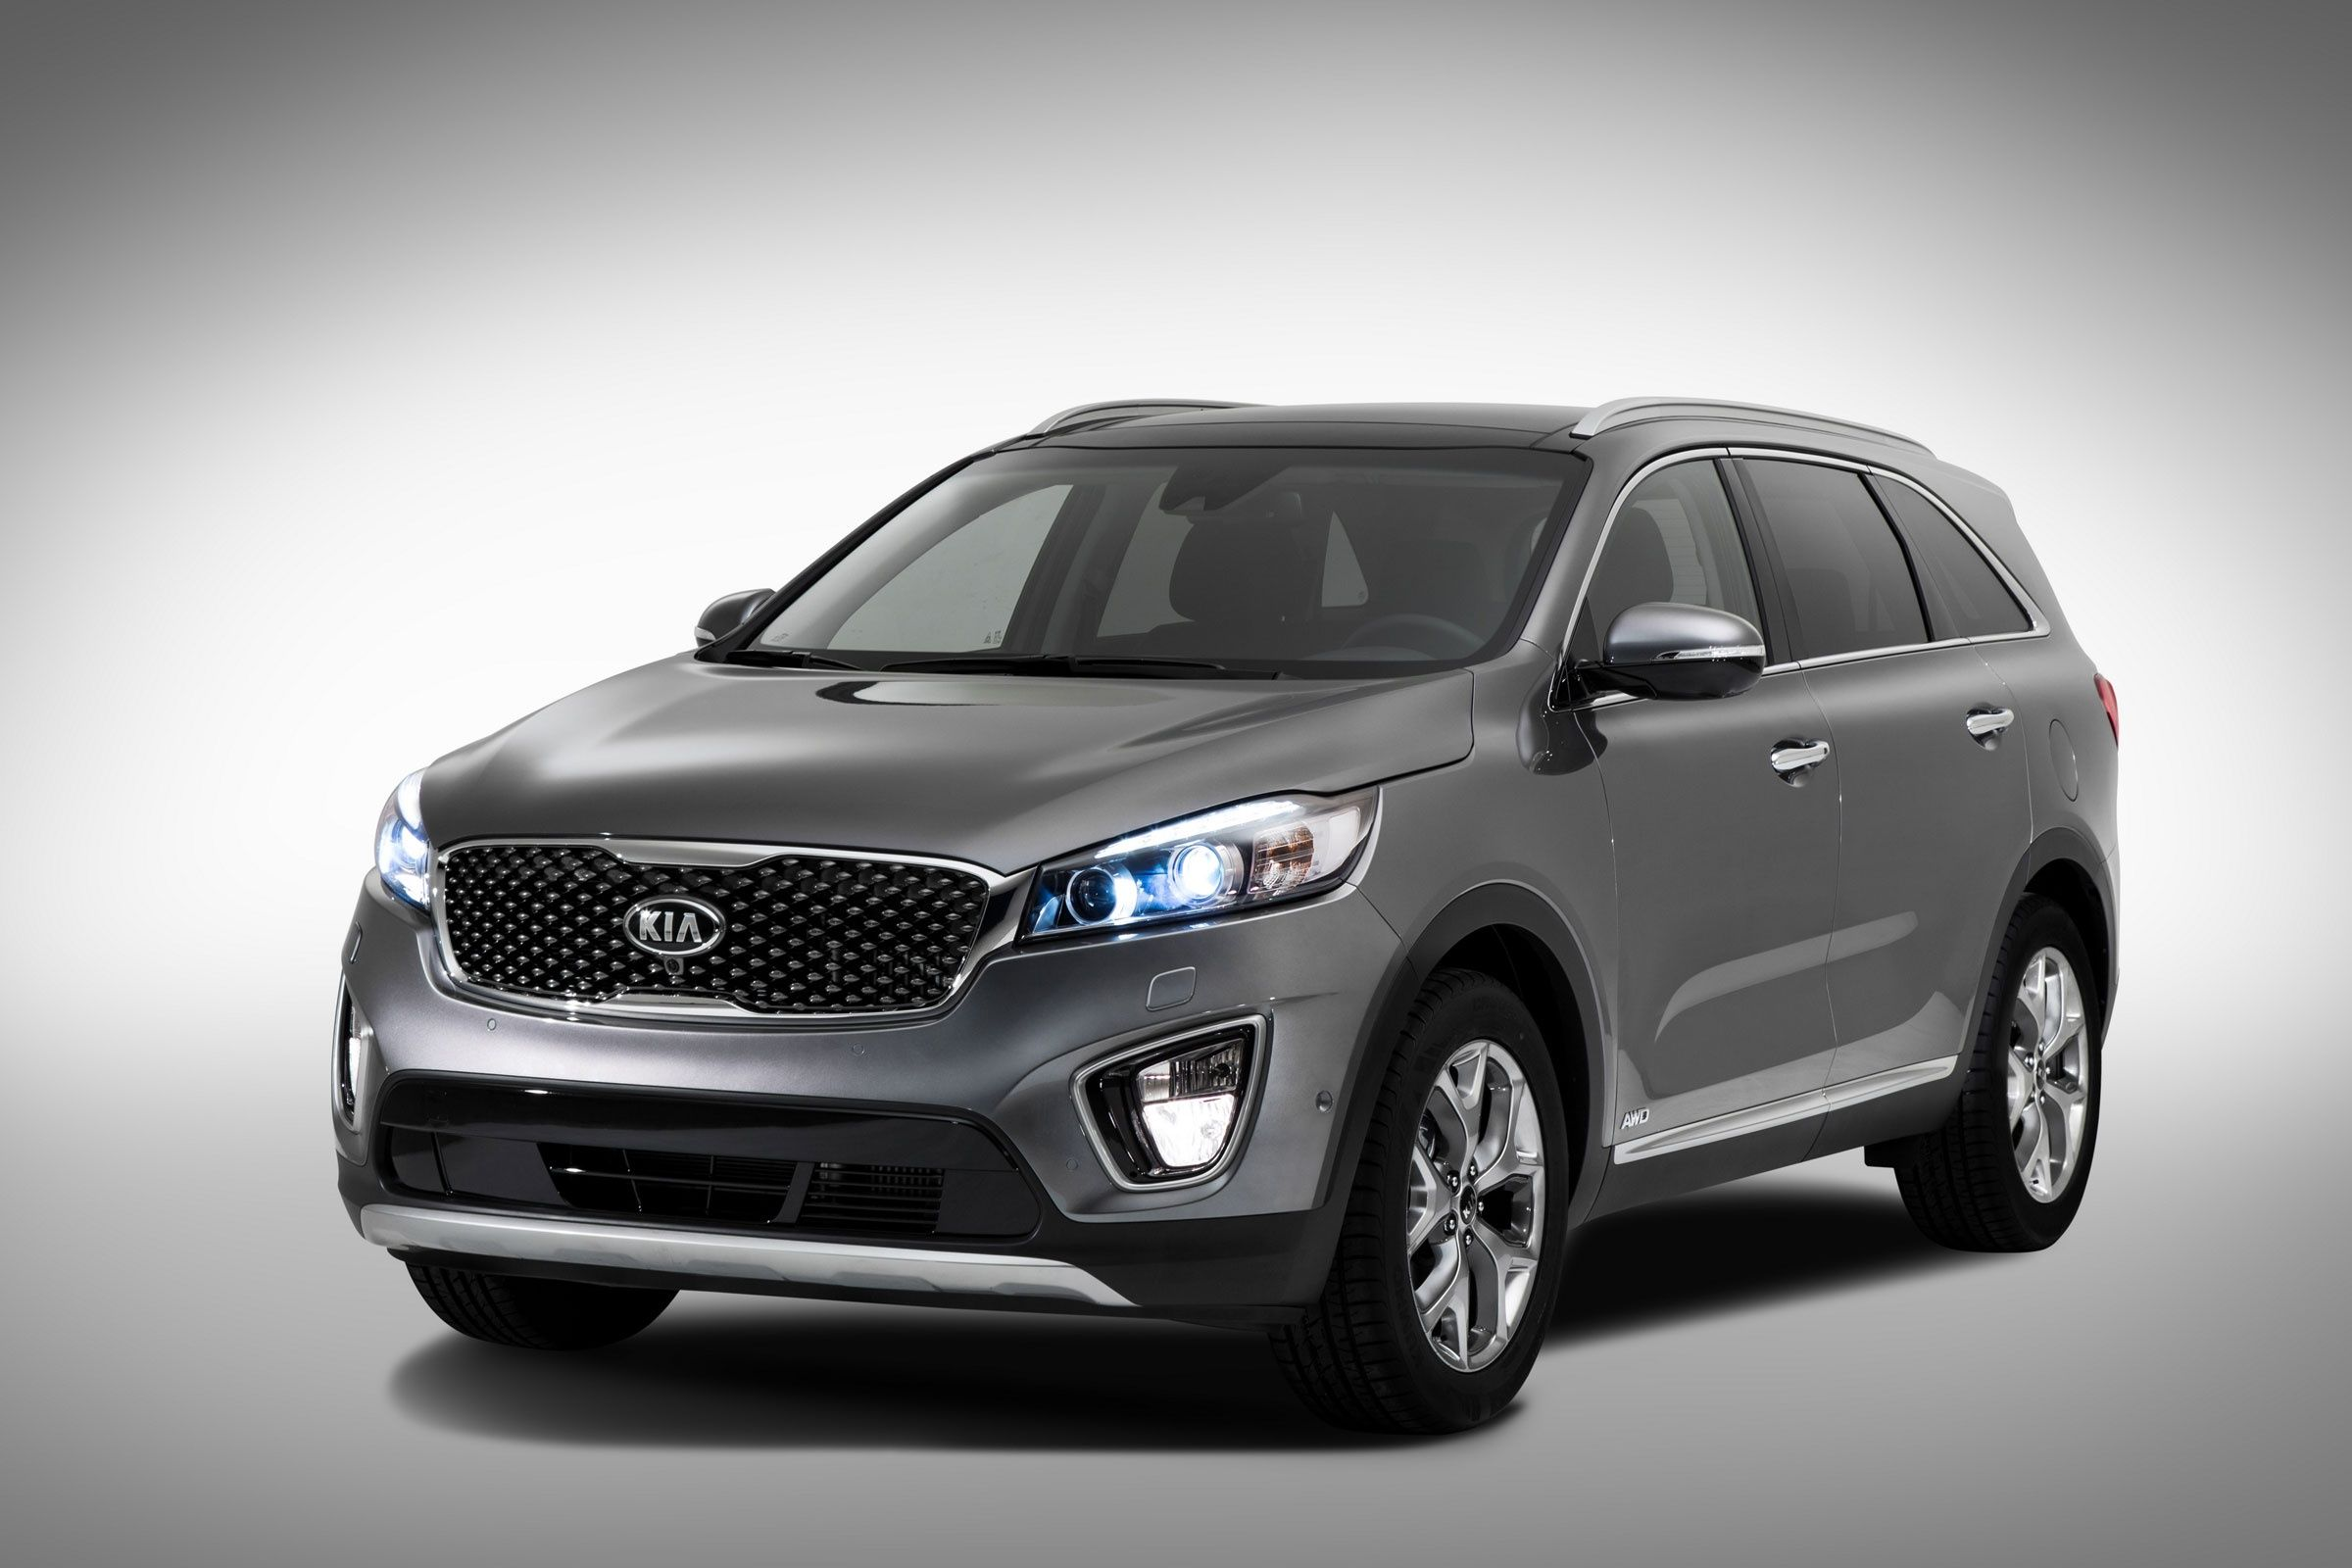 Kia Sorento 2015 Workshop Service Repair Manual Download. The manual for Kia  Sorento 2015 is available for instant download and been prepared primarily  for ...